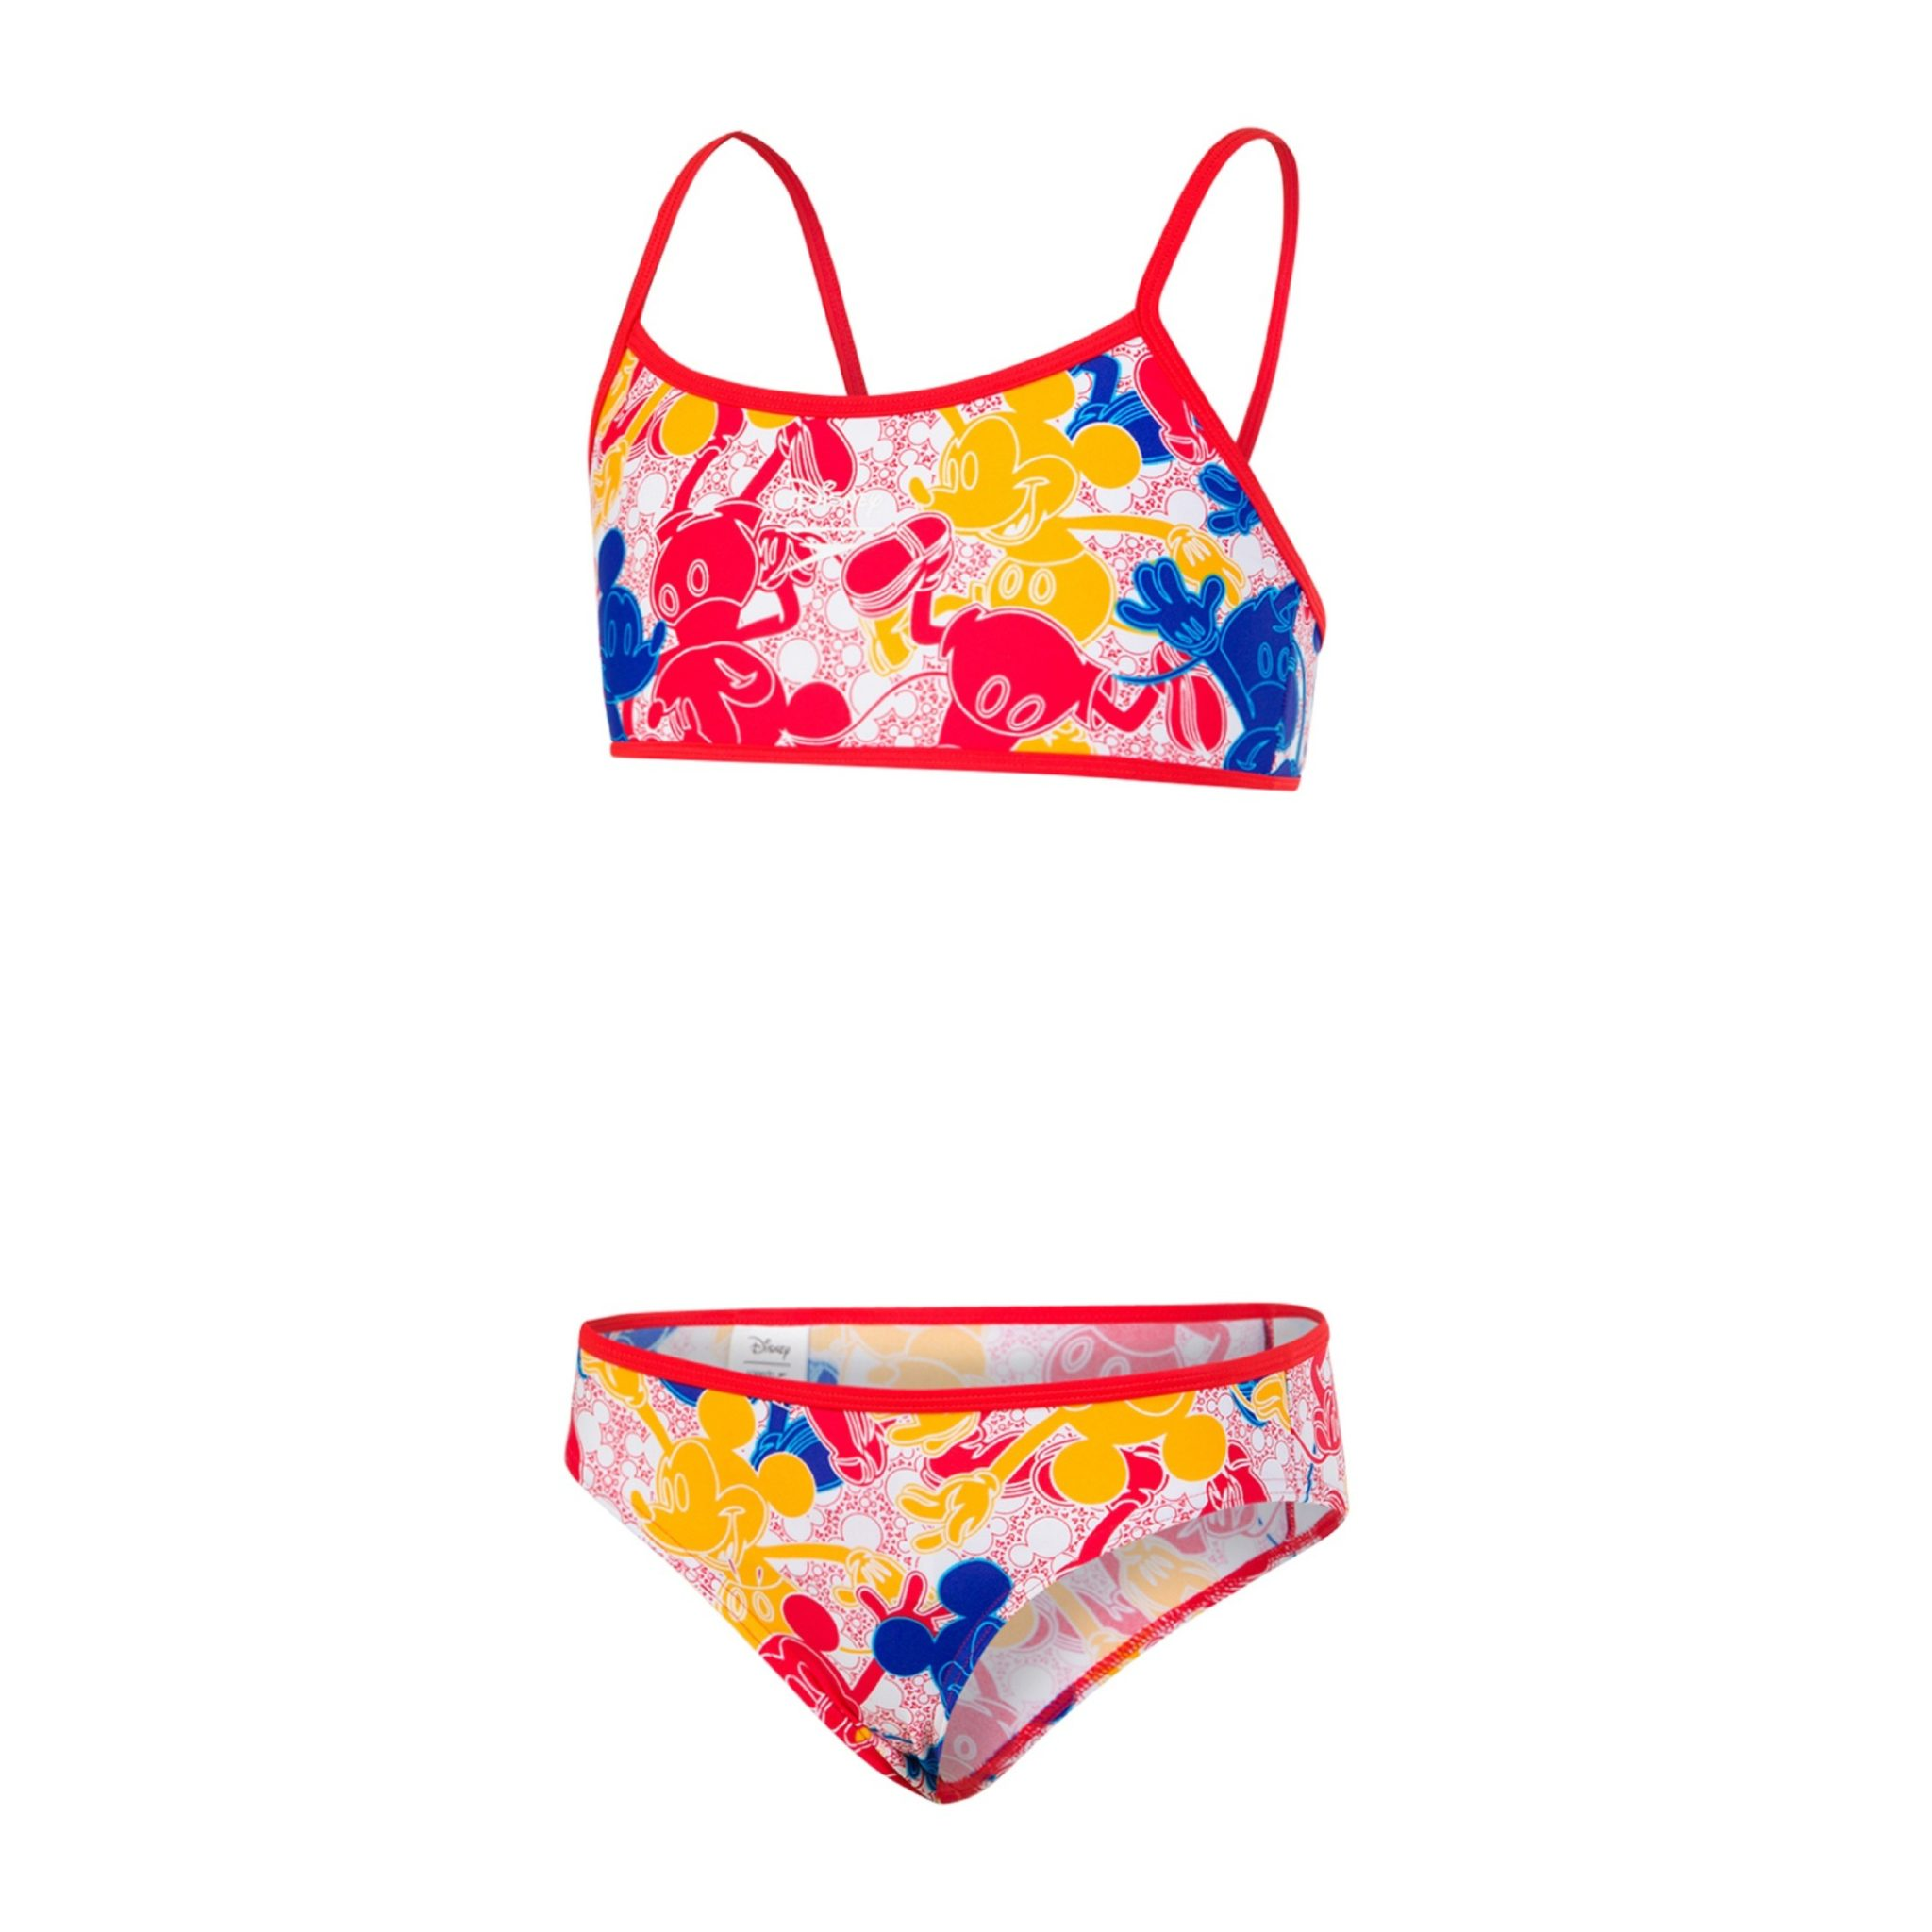 388ca6da7f08 Disney Mickey Mouse Allover Two Piece available from www.speedo.com